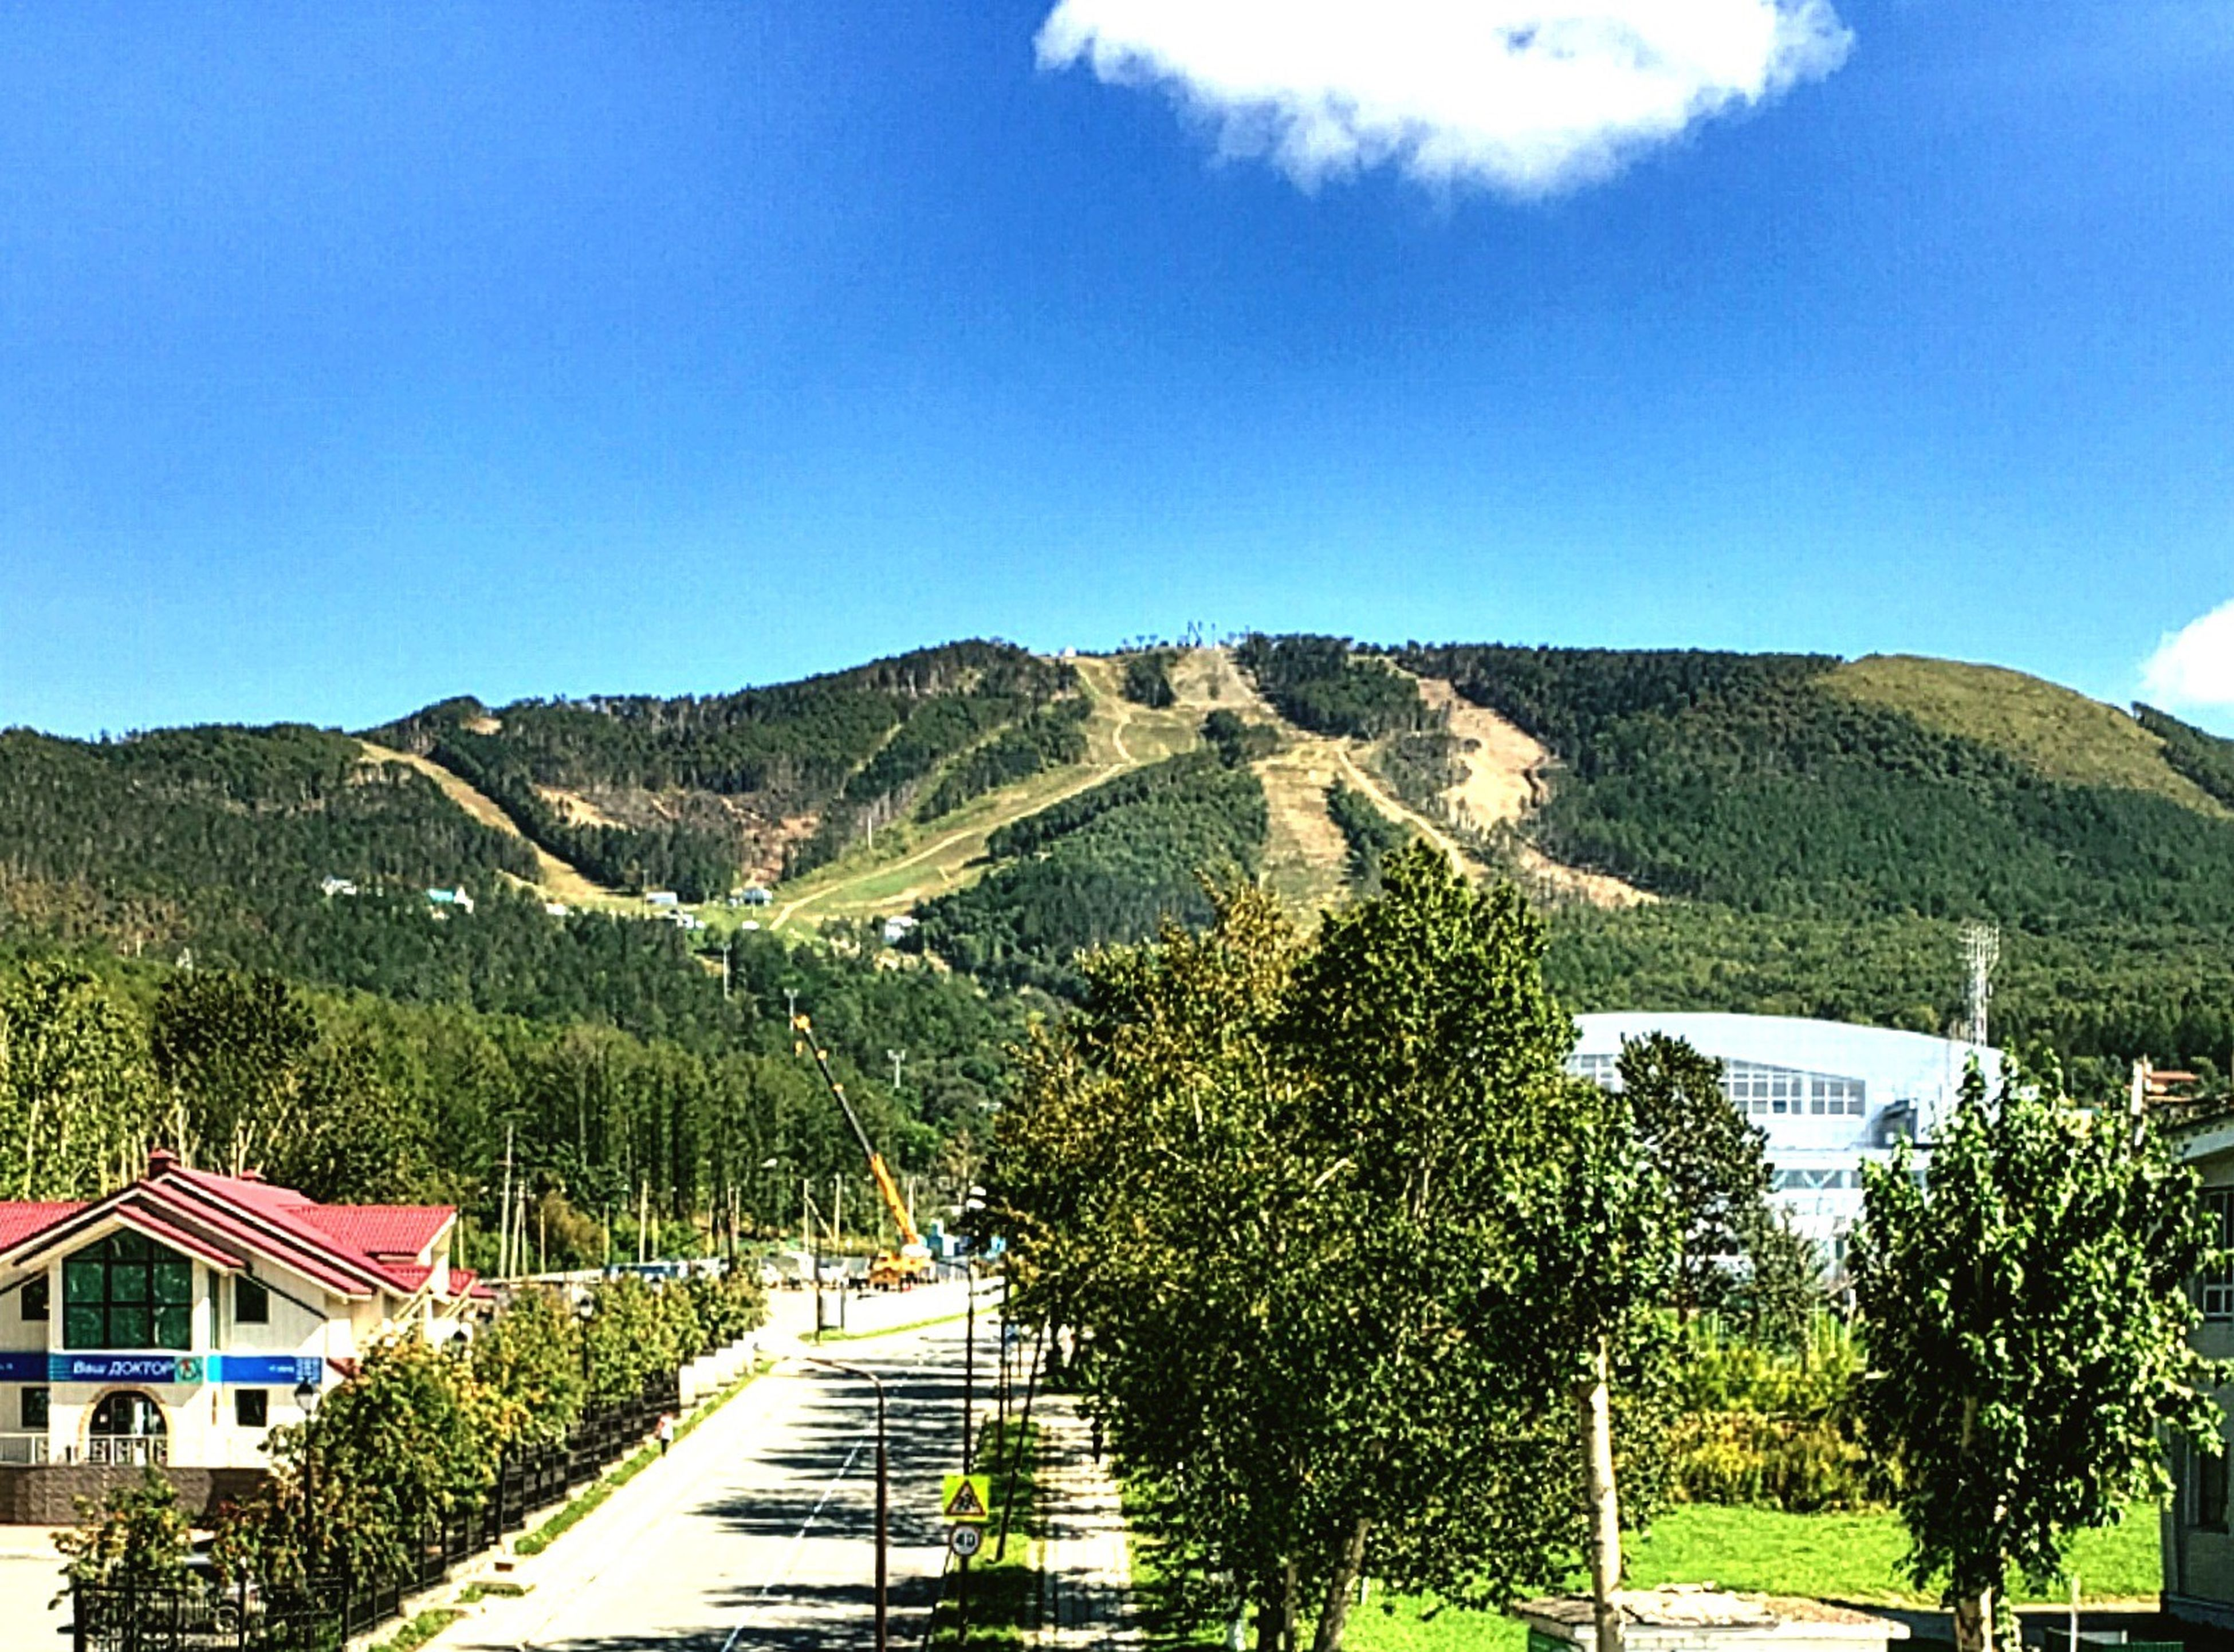 mountain, architecture, tree, building exterior, built structure, house, clear sky, blue, travel destinations, growth, mountain range, tranquility, tranquil scene, scenics, day, nature, tourism, outdoors, non-urban scene, beauty in nature, majestic, town, green color, lush foliage, physical geography, no people